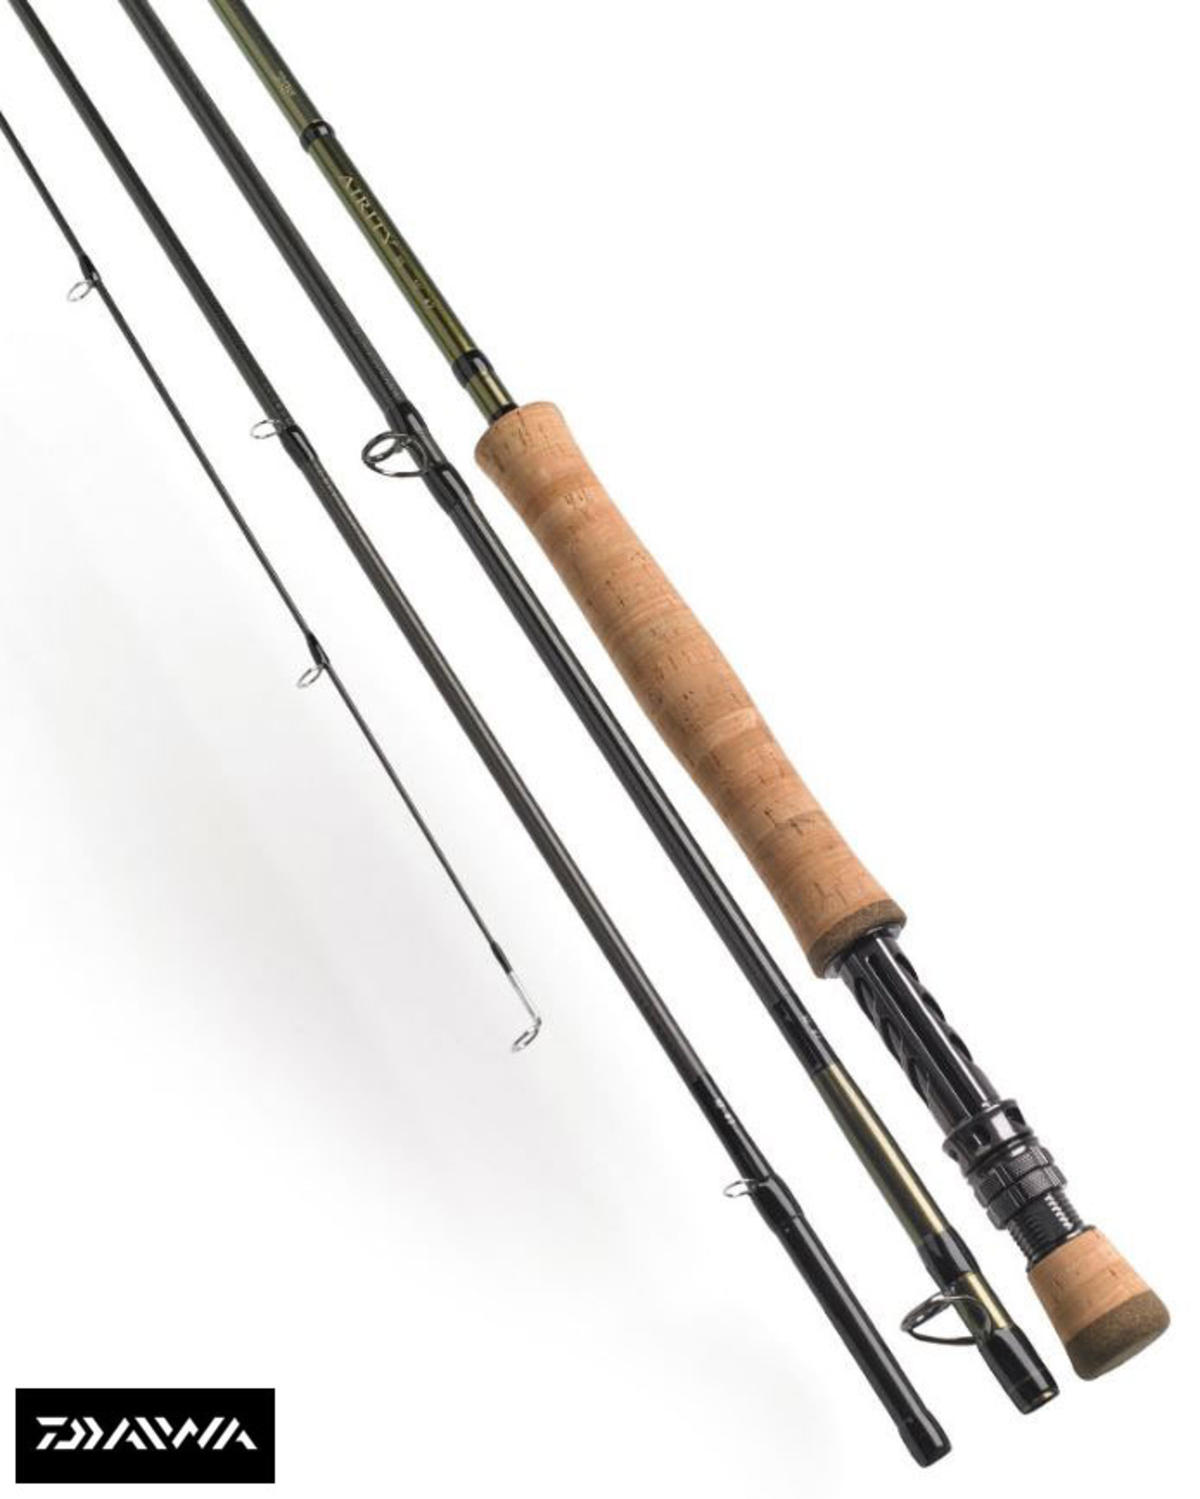 Ex Display Daiwa Airity X45 Trout Fly 9'6' #8 4pc - AX45RSF968-AU